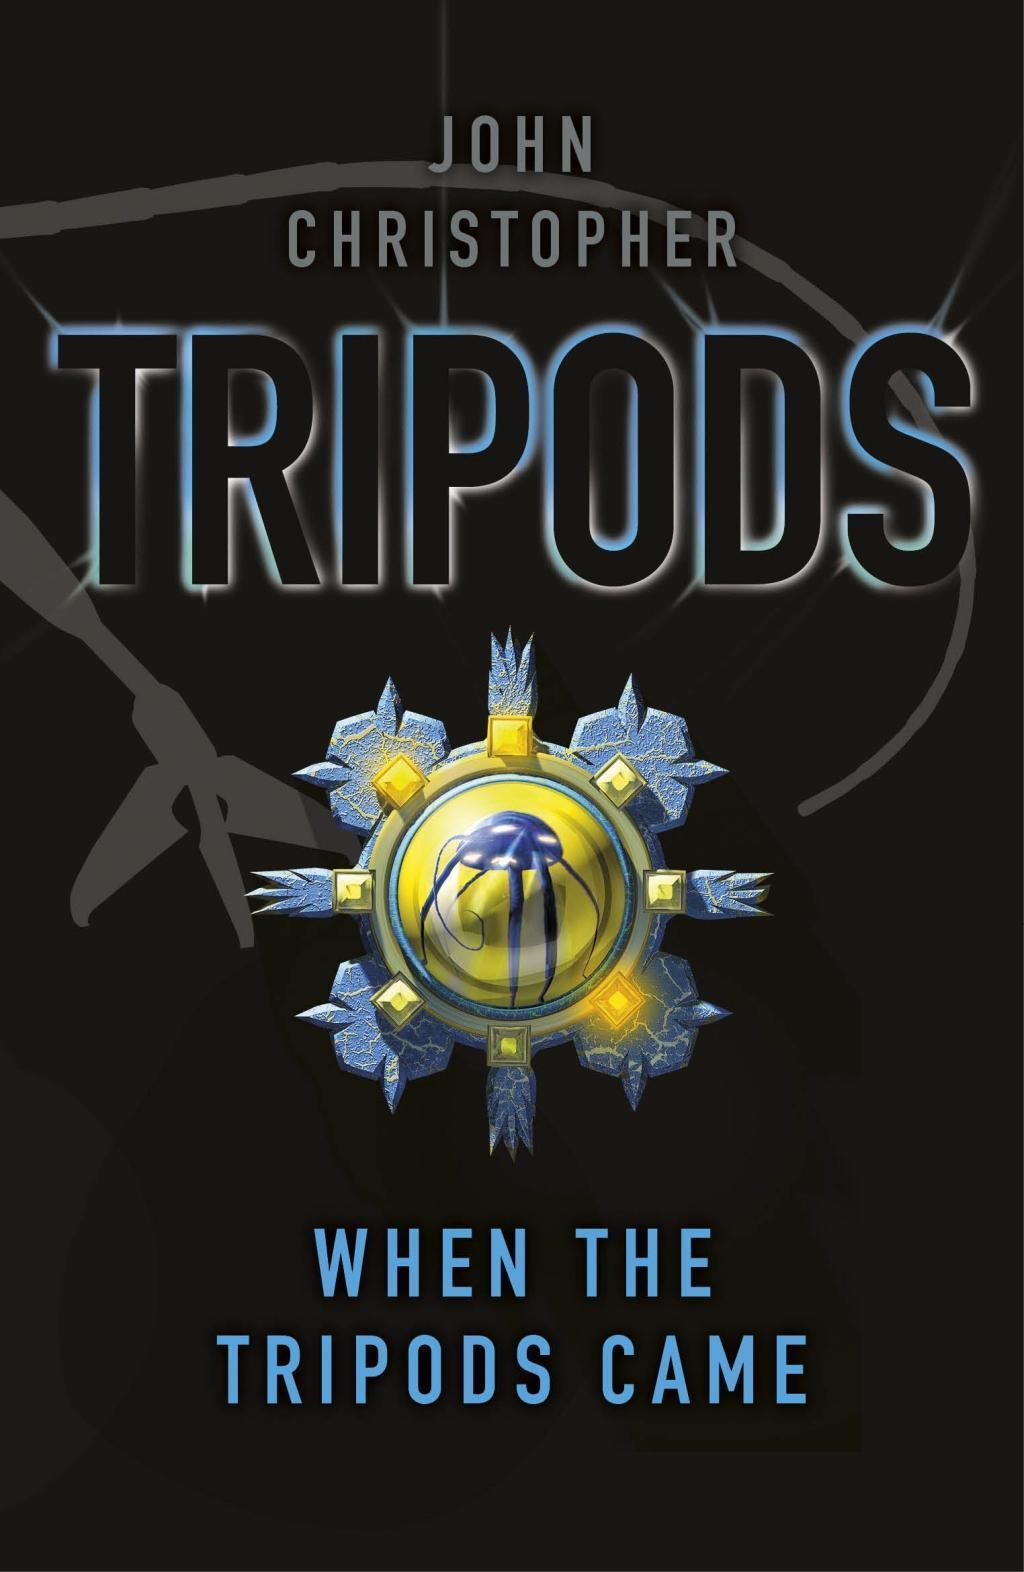 Tripods: When the Tripods Came